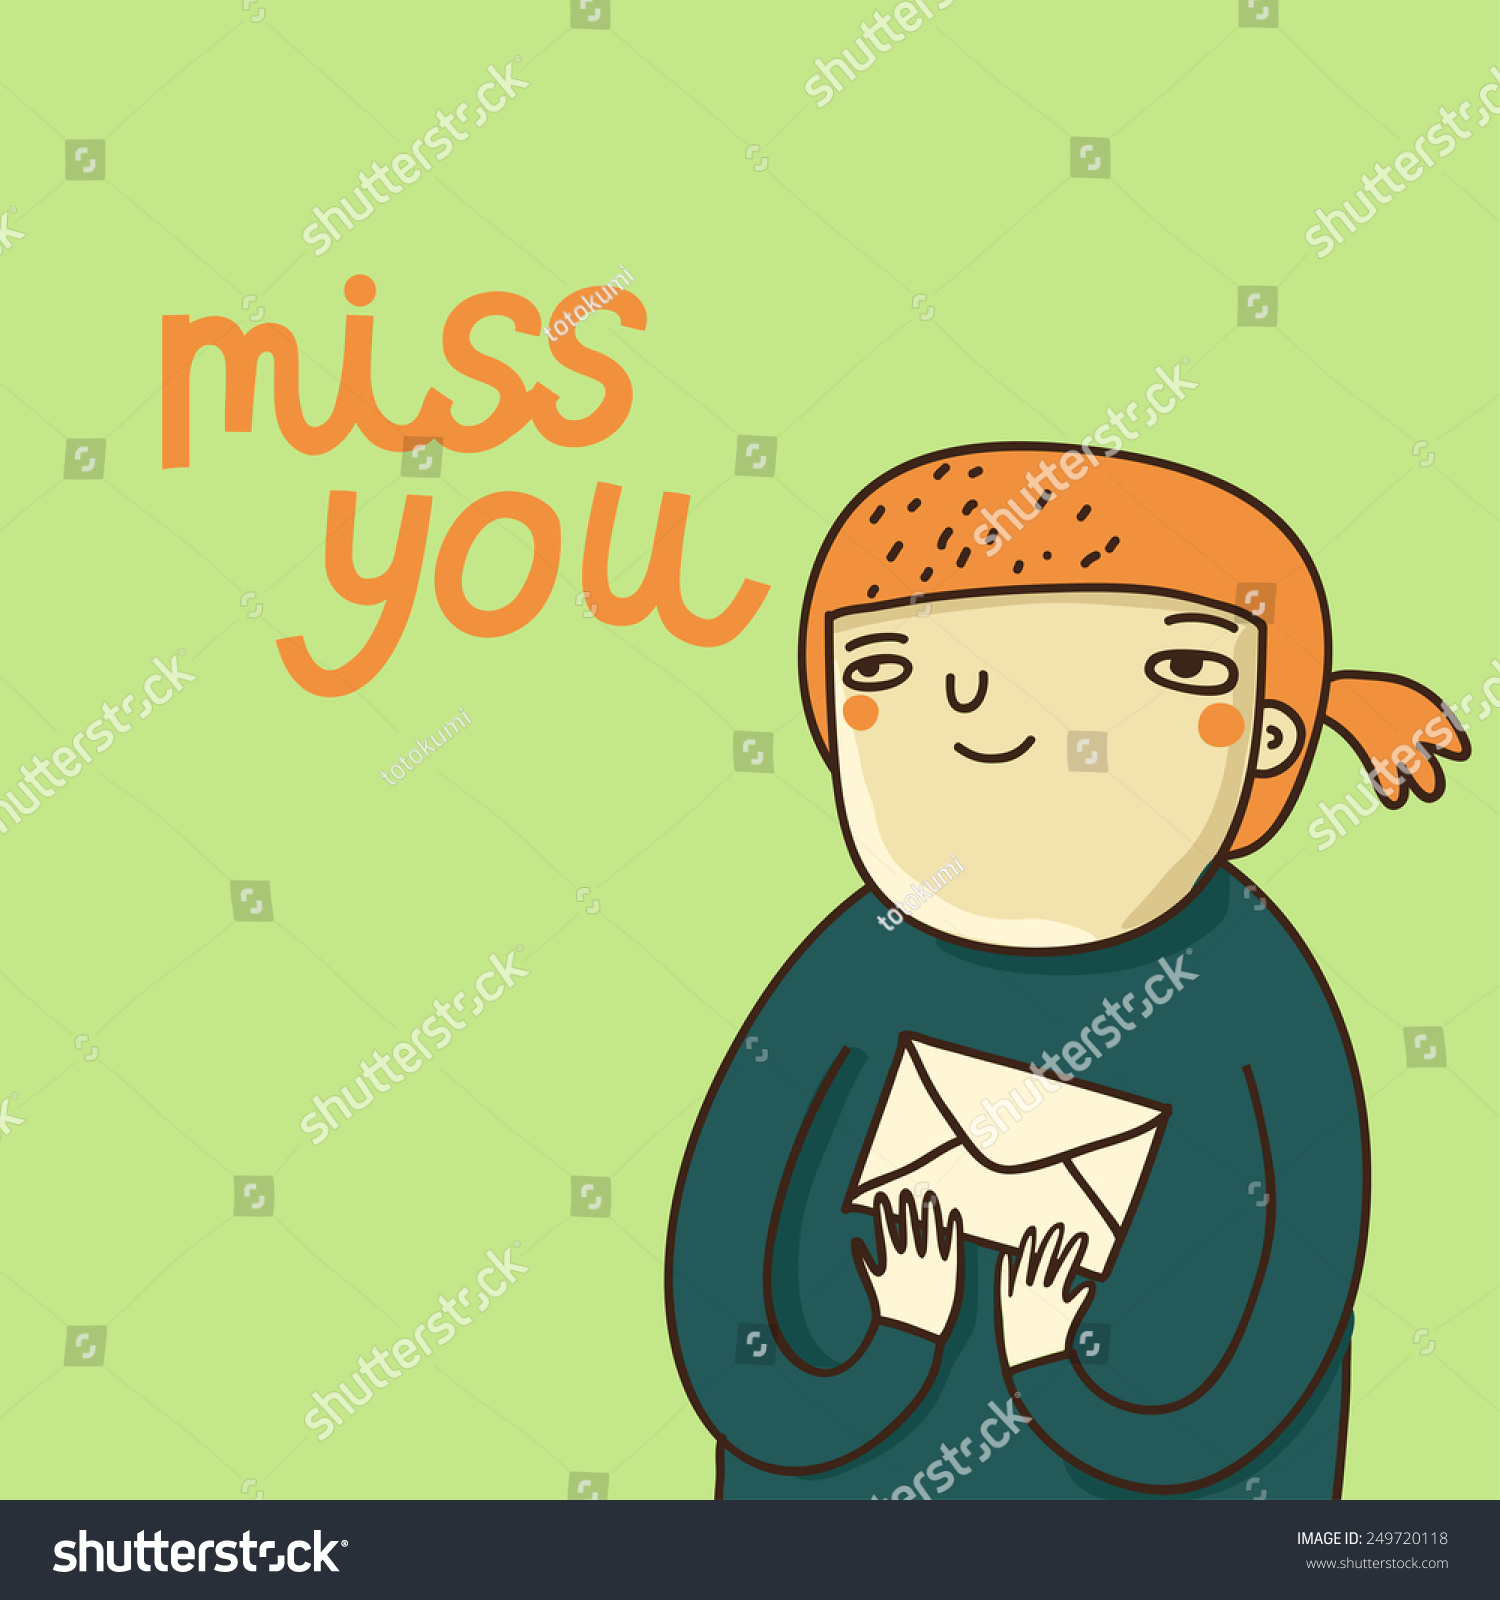 Cute Cartoon Card Girl Miss You Stock Vector Royalty Free